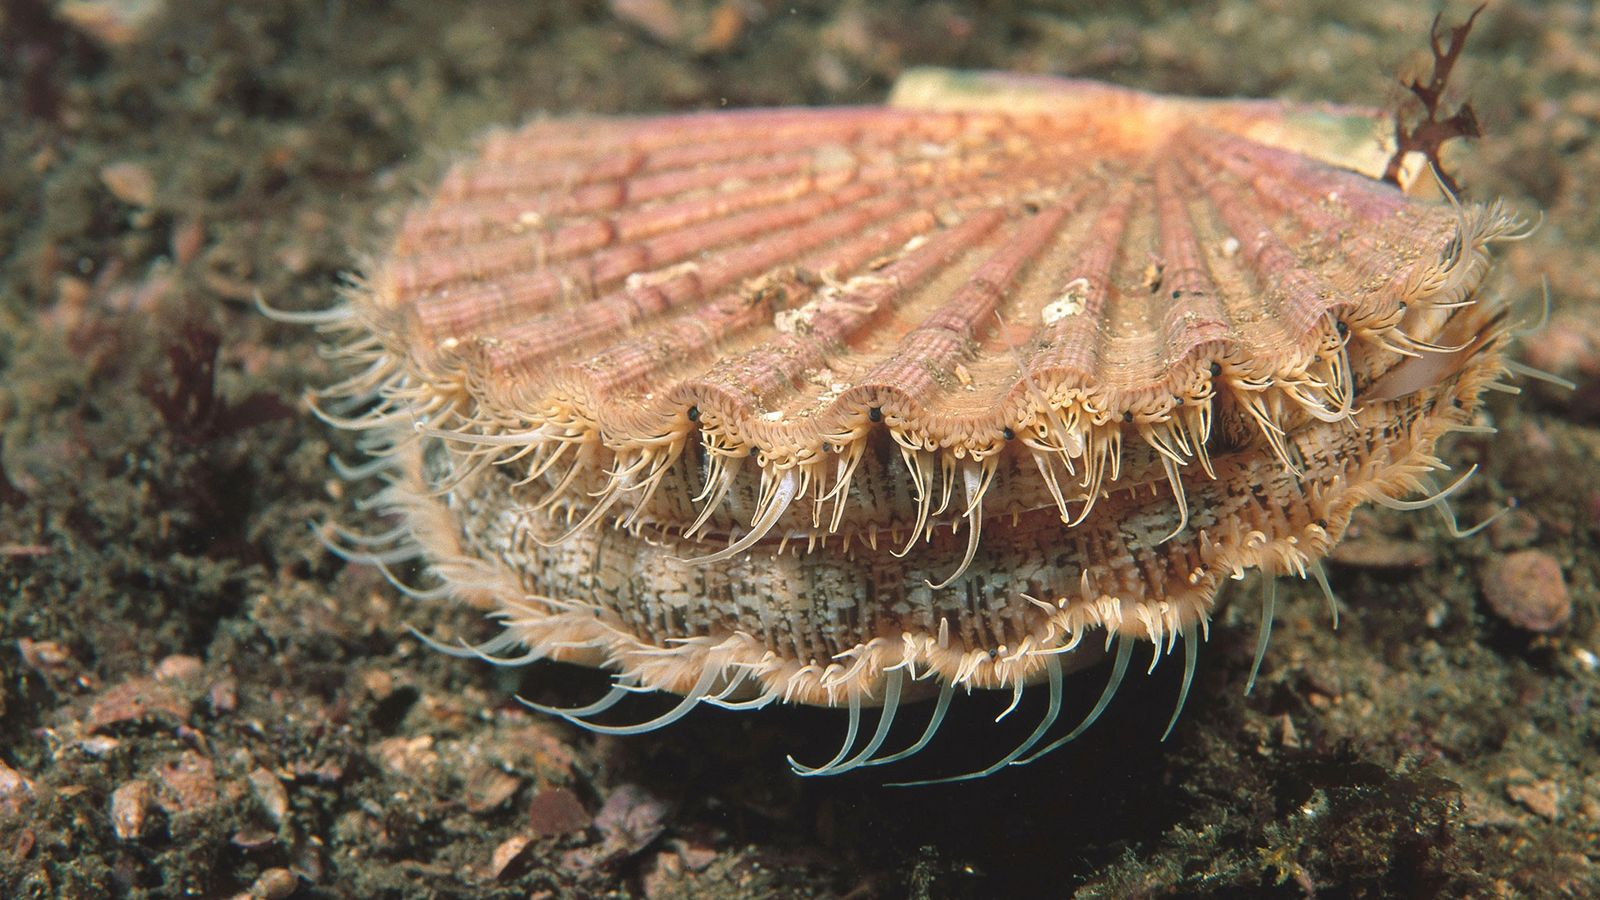 A commercially important mollusc, the great scallop ('Pecten maximus'), is capable of absorbing billions of plastic ...